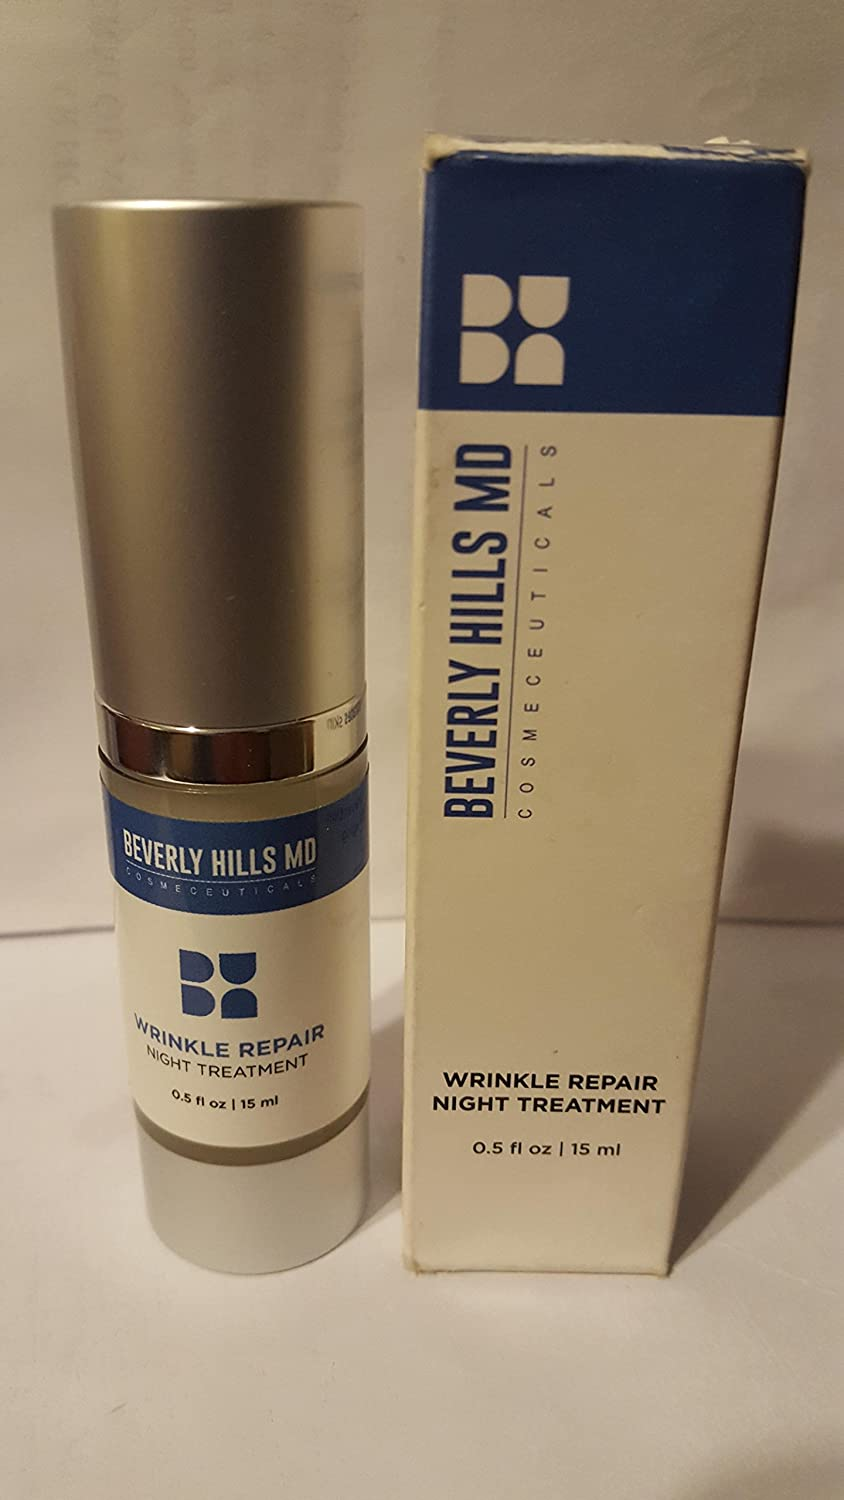 Beverly hill md lift and firming reviews - Amazon Com Beverly Hills Md Wrinkle Repair Night Treatment Everything Else